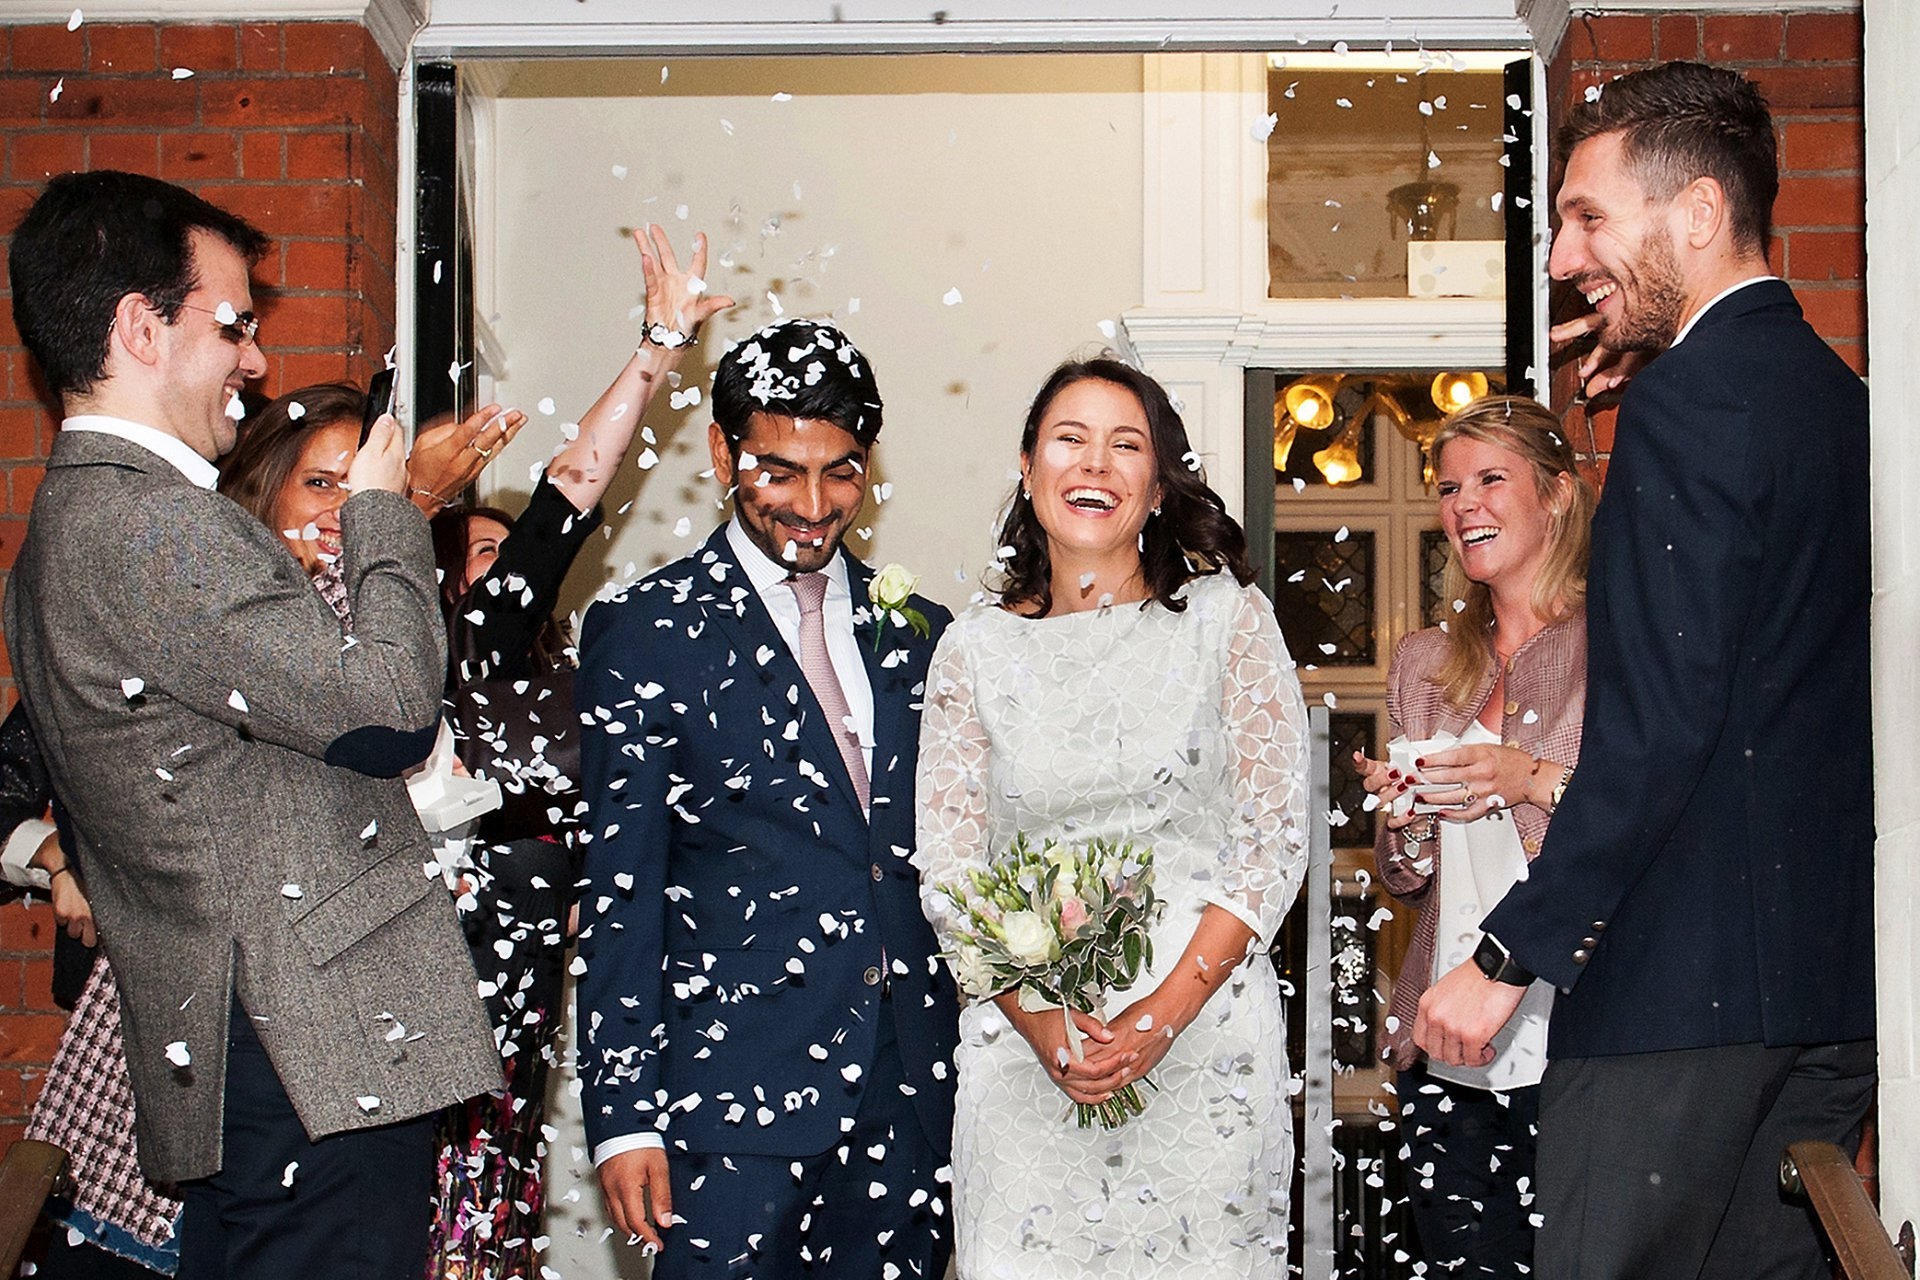 Mayfair Library rainy wedding photography - guests throwing confetti inside the porch at Mayfair Library due to the monsson-like heavy rain outside